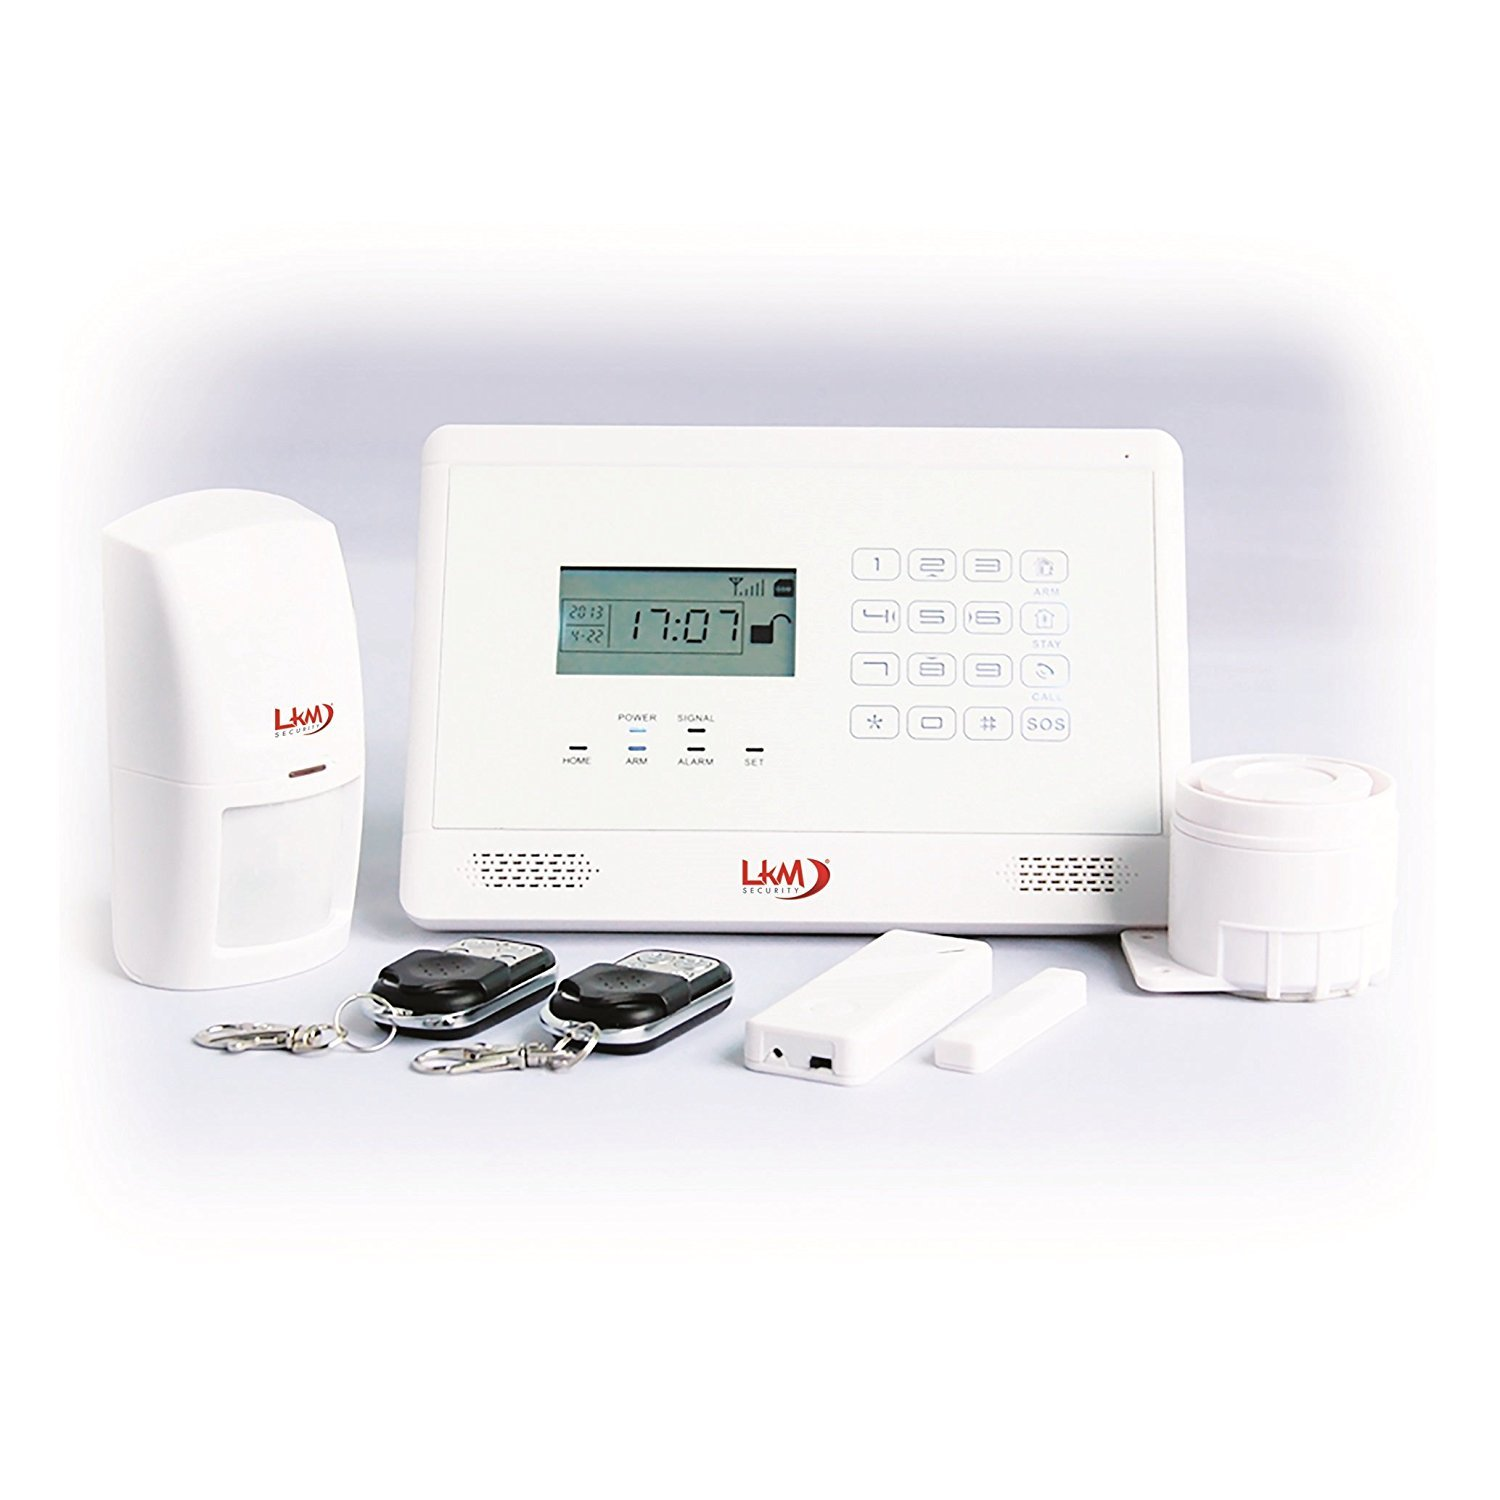 LKM Security YL007M2EB WG-Kit de Alarma Inalámbrica, gsm ...